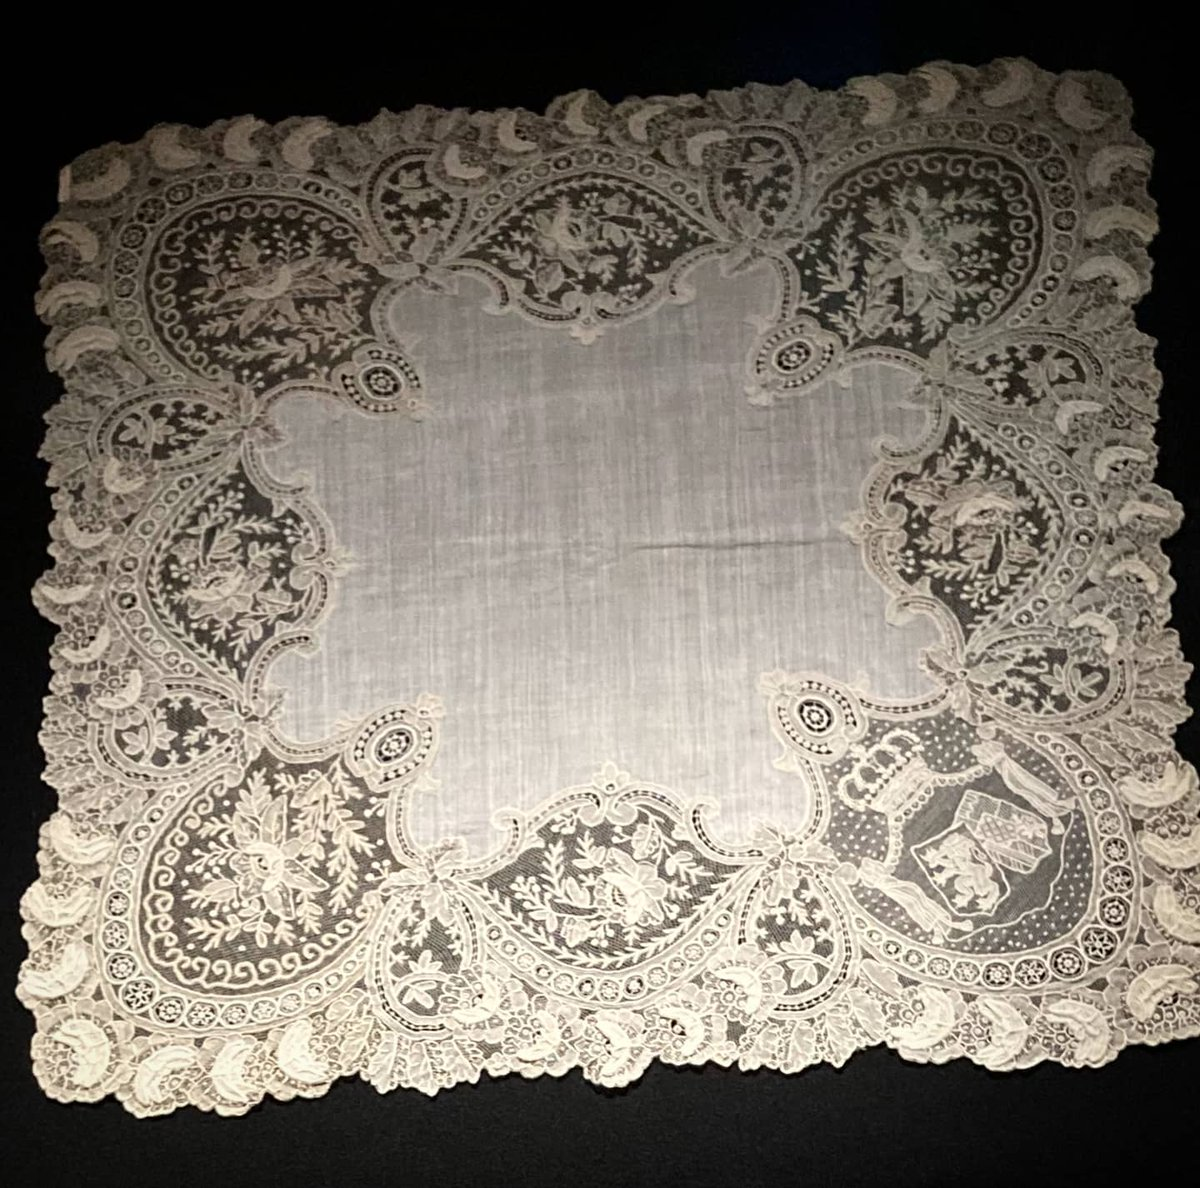 Both handkerchiefs are made from 'point de gaze', the finest and most luxurious of the Brussels laces.  These handkerchiefs, together with four others from our collections, are on view in the Museum of Costume and Lace until the end of November! https://t.co/dda5pOtvem